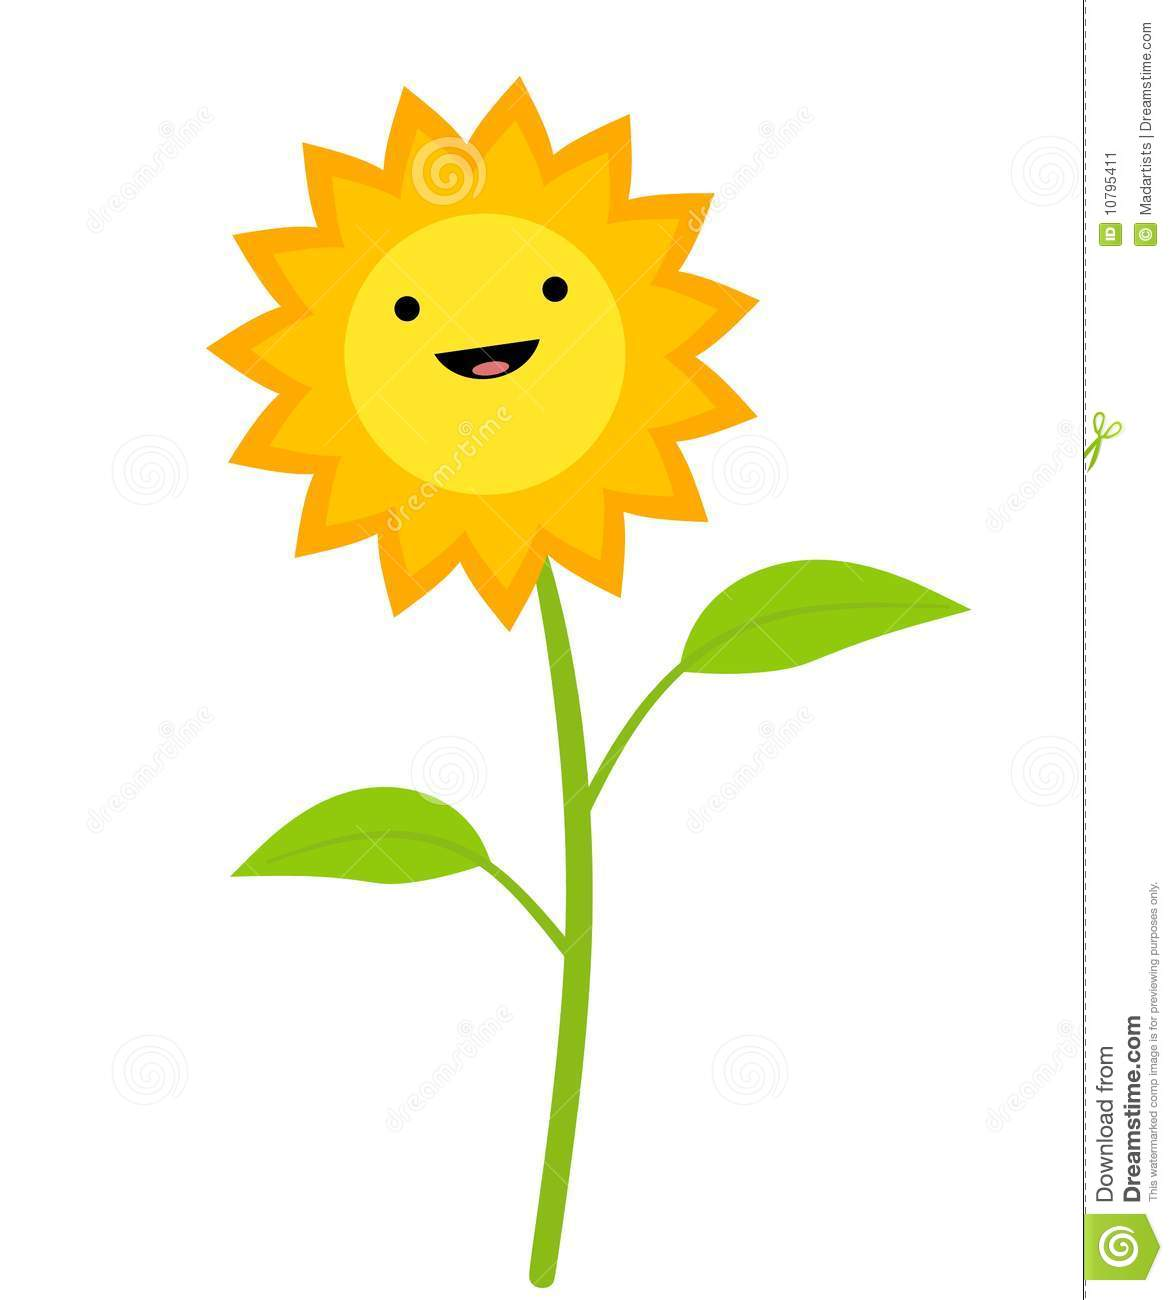 Smiling Sunflower Clip Art Stock Image - Image: 10795411